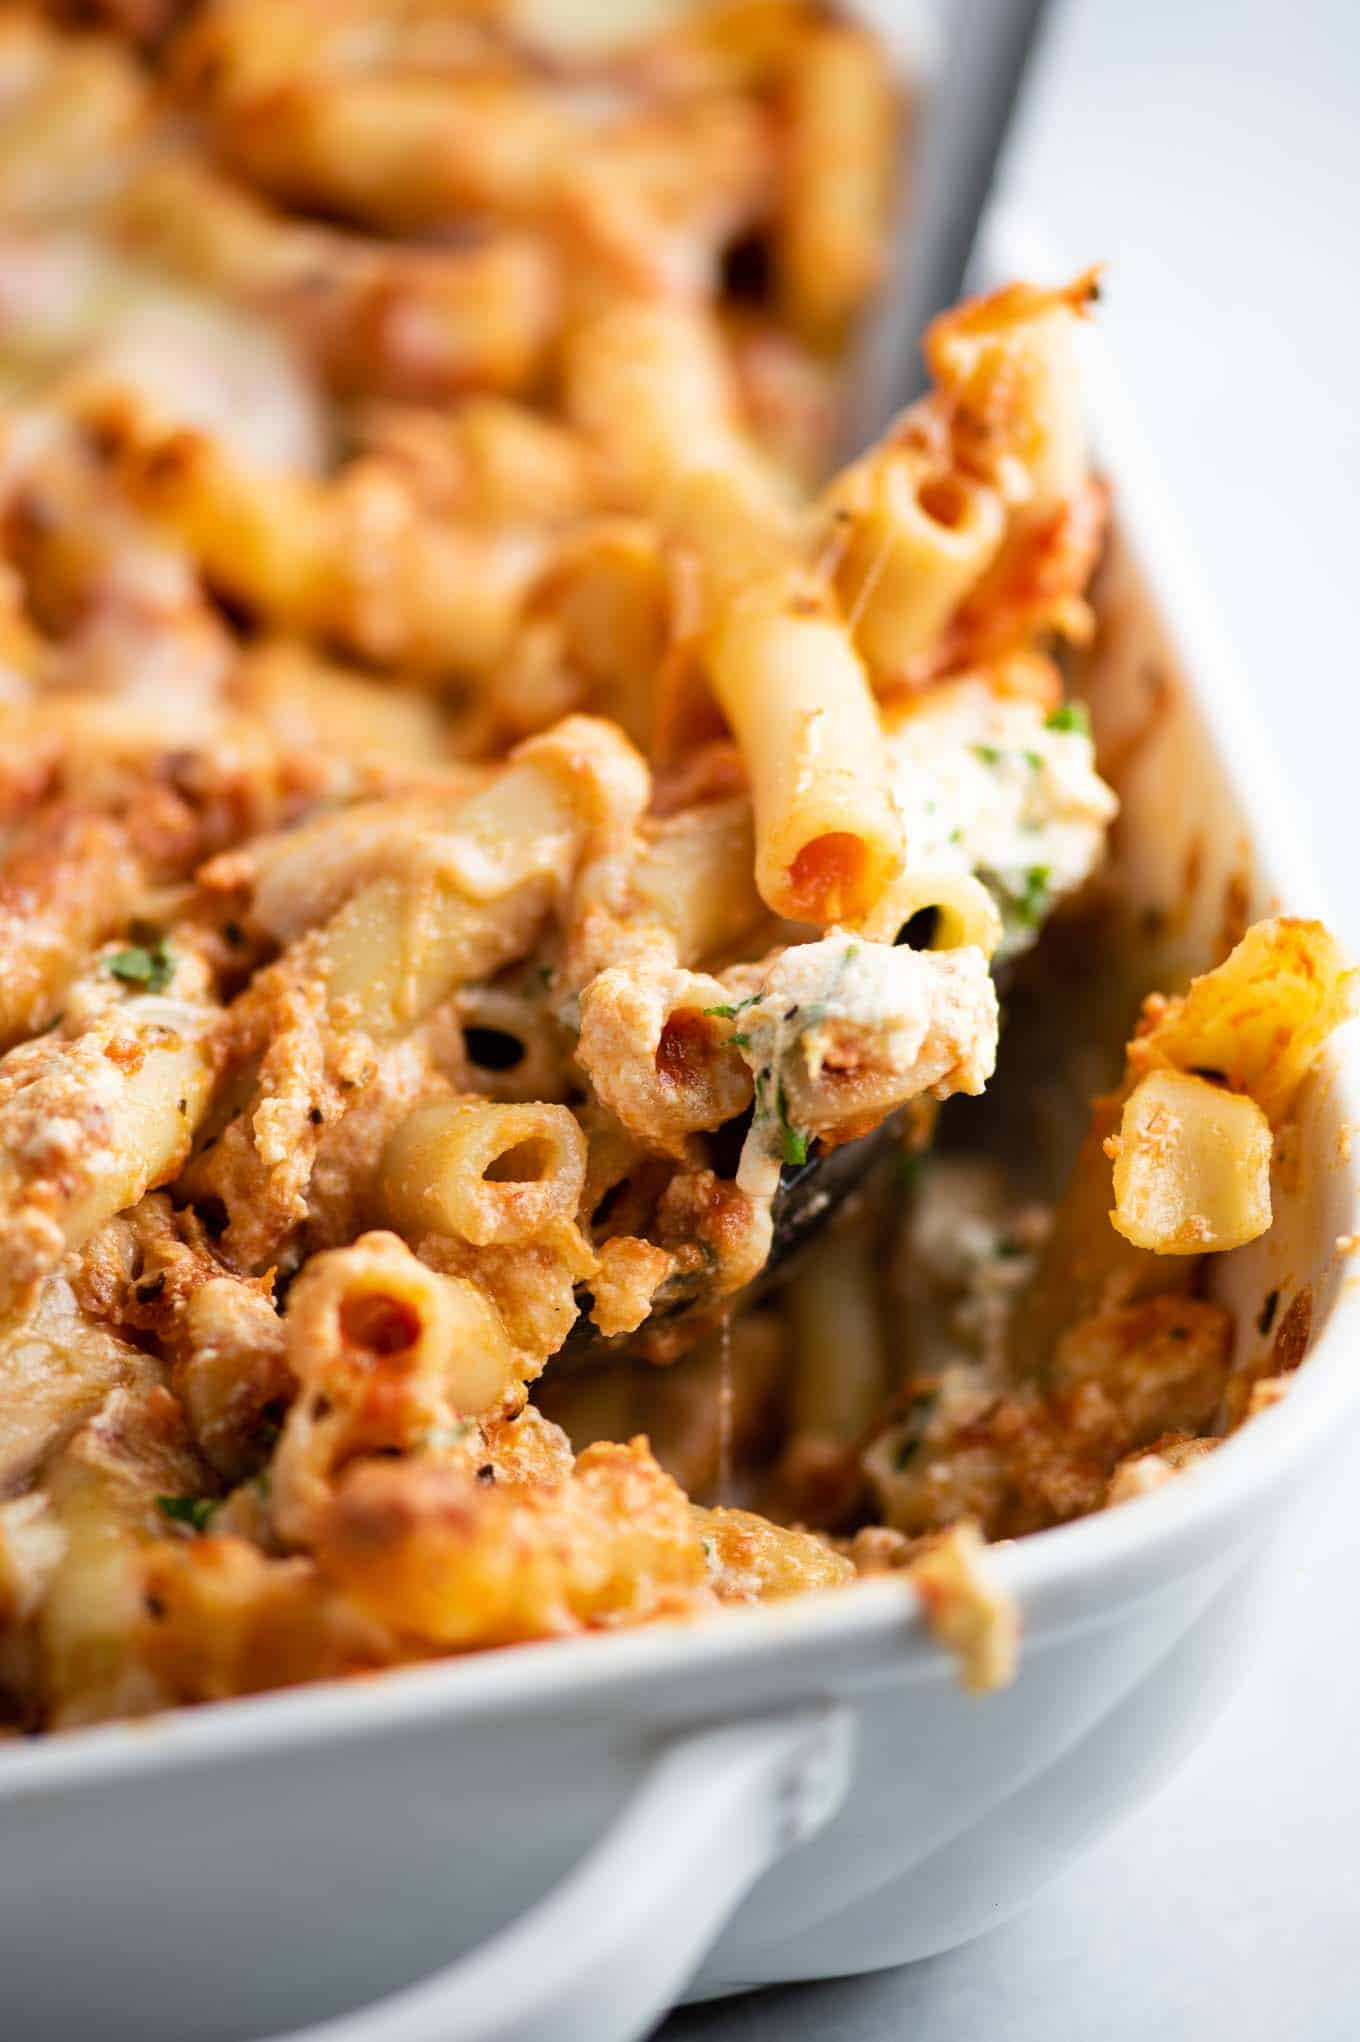 a spoon dishing out a scoop of ziti from the pan